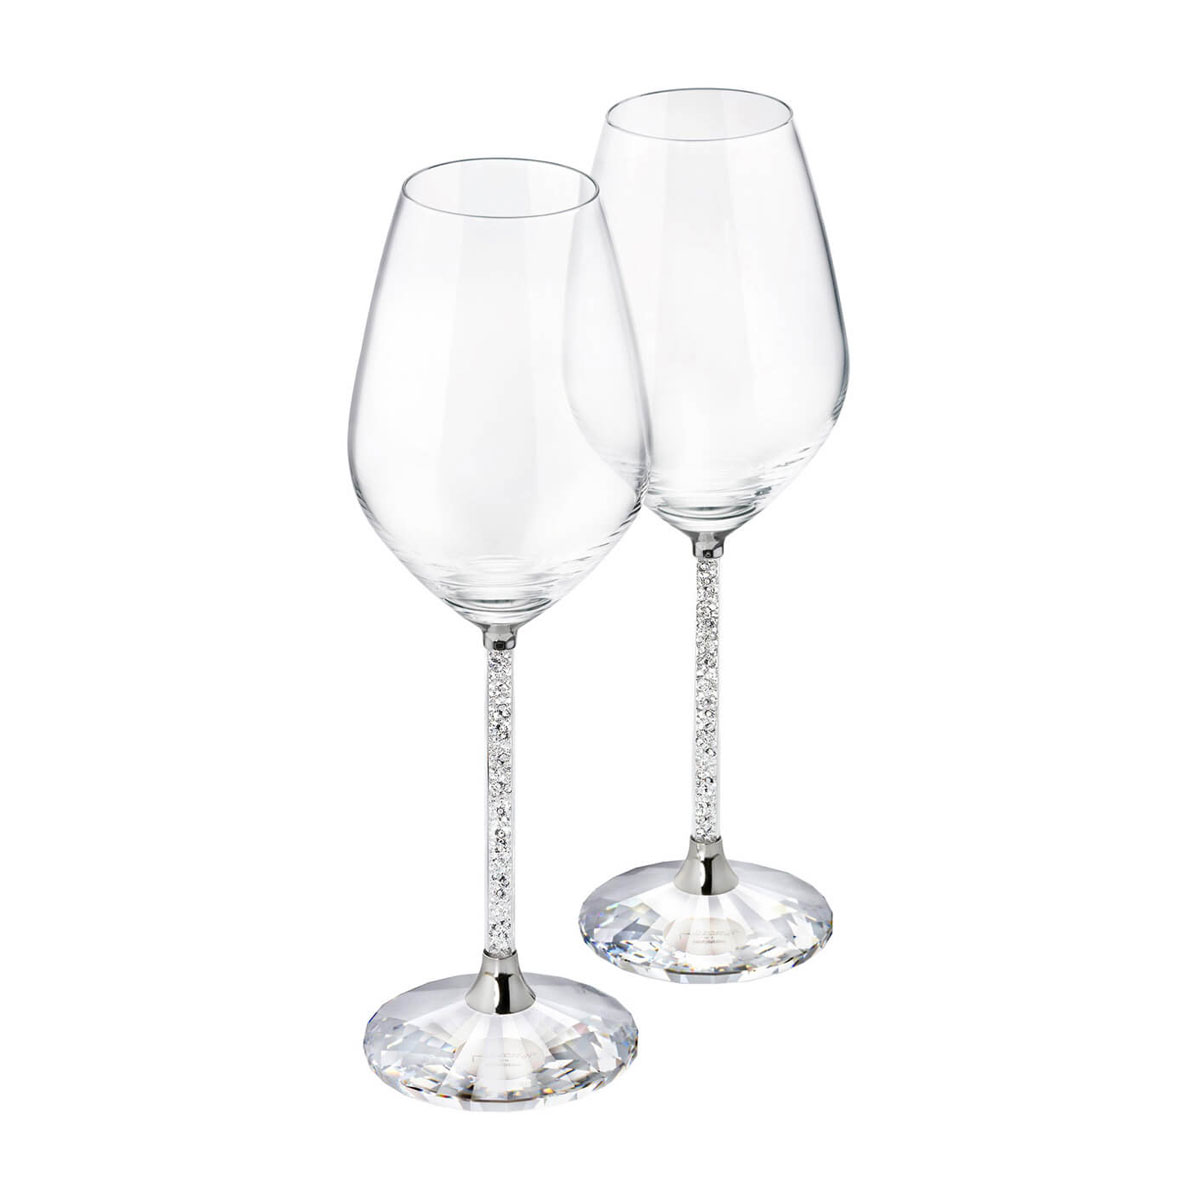 Swarovski Crystalline Wine Glasses Pair